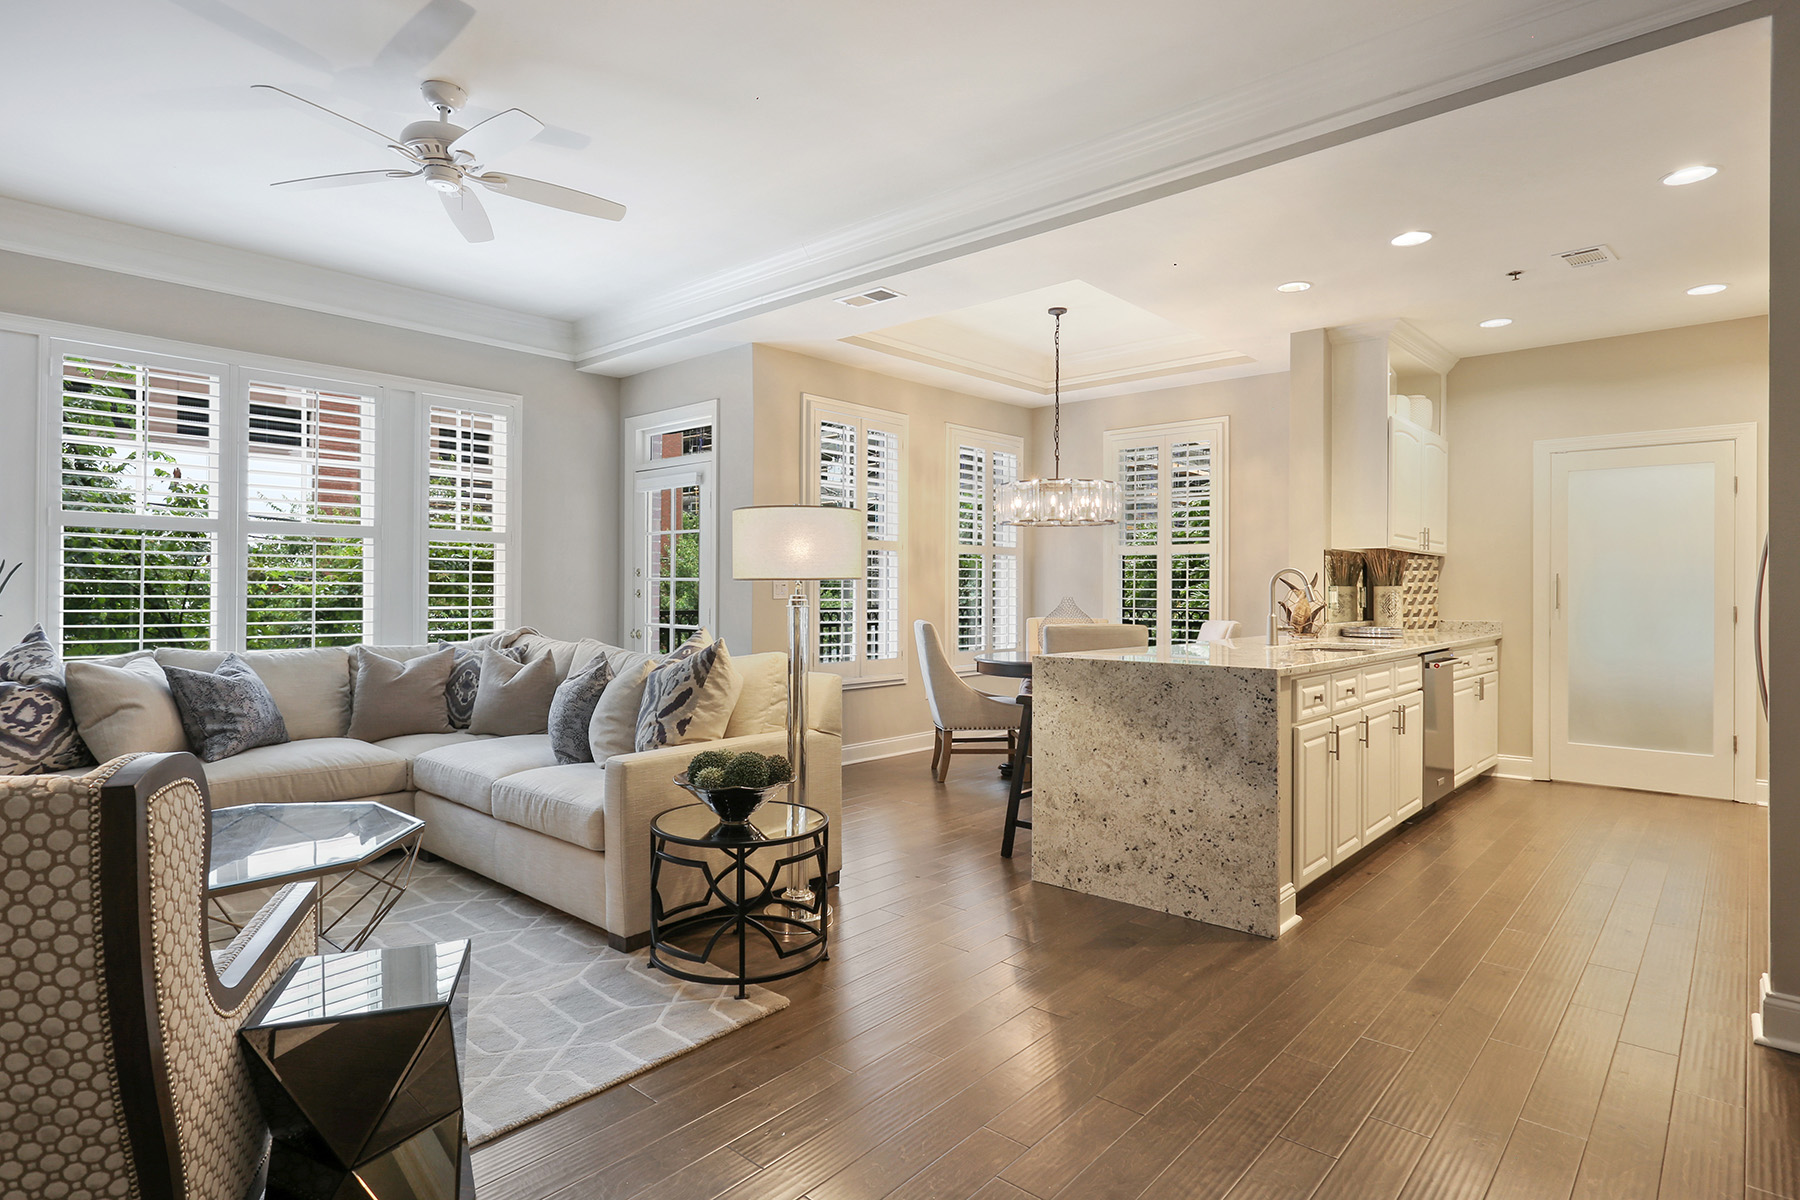 Single Family Home for Sale at Stunning Renovation in The Heart of Midtown 850 Piedmont Avenue NE #2208 Atlanta, Georgia 30308 United States